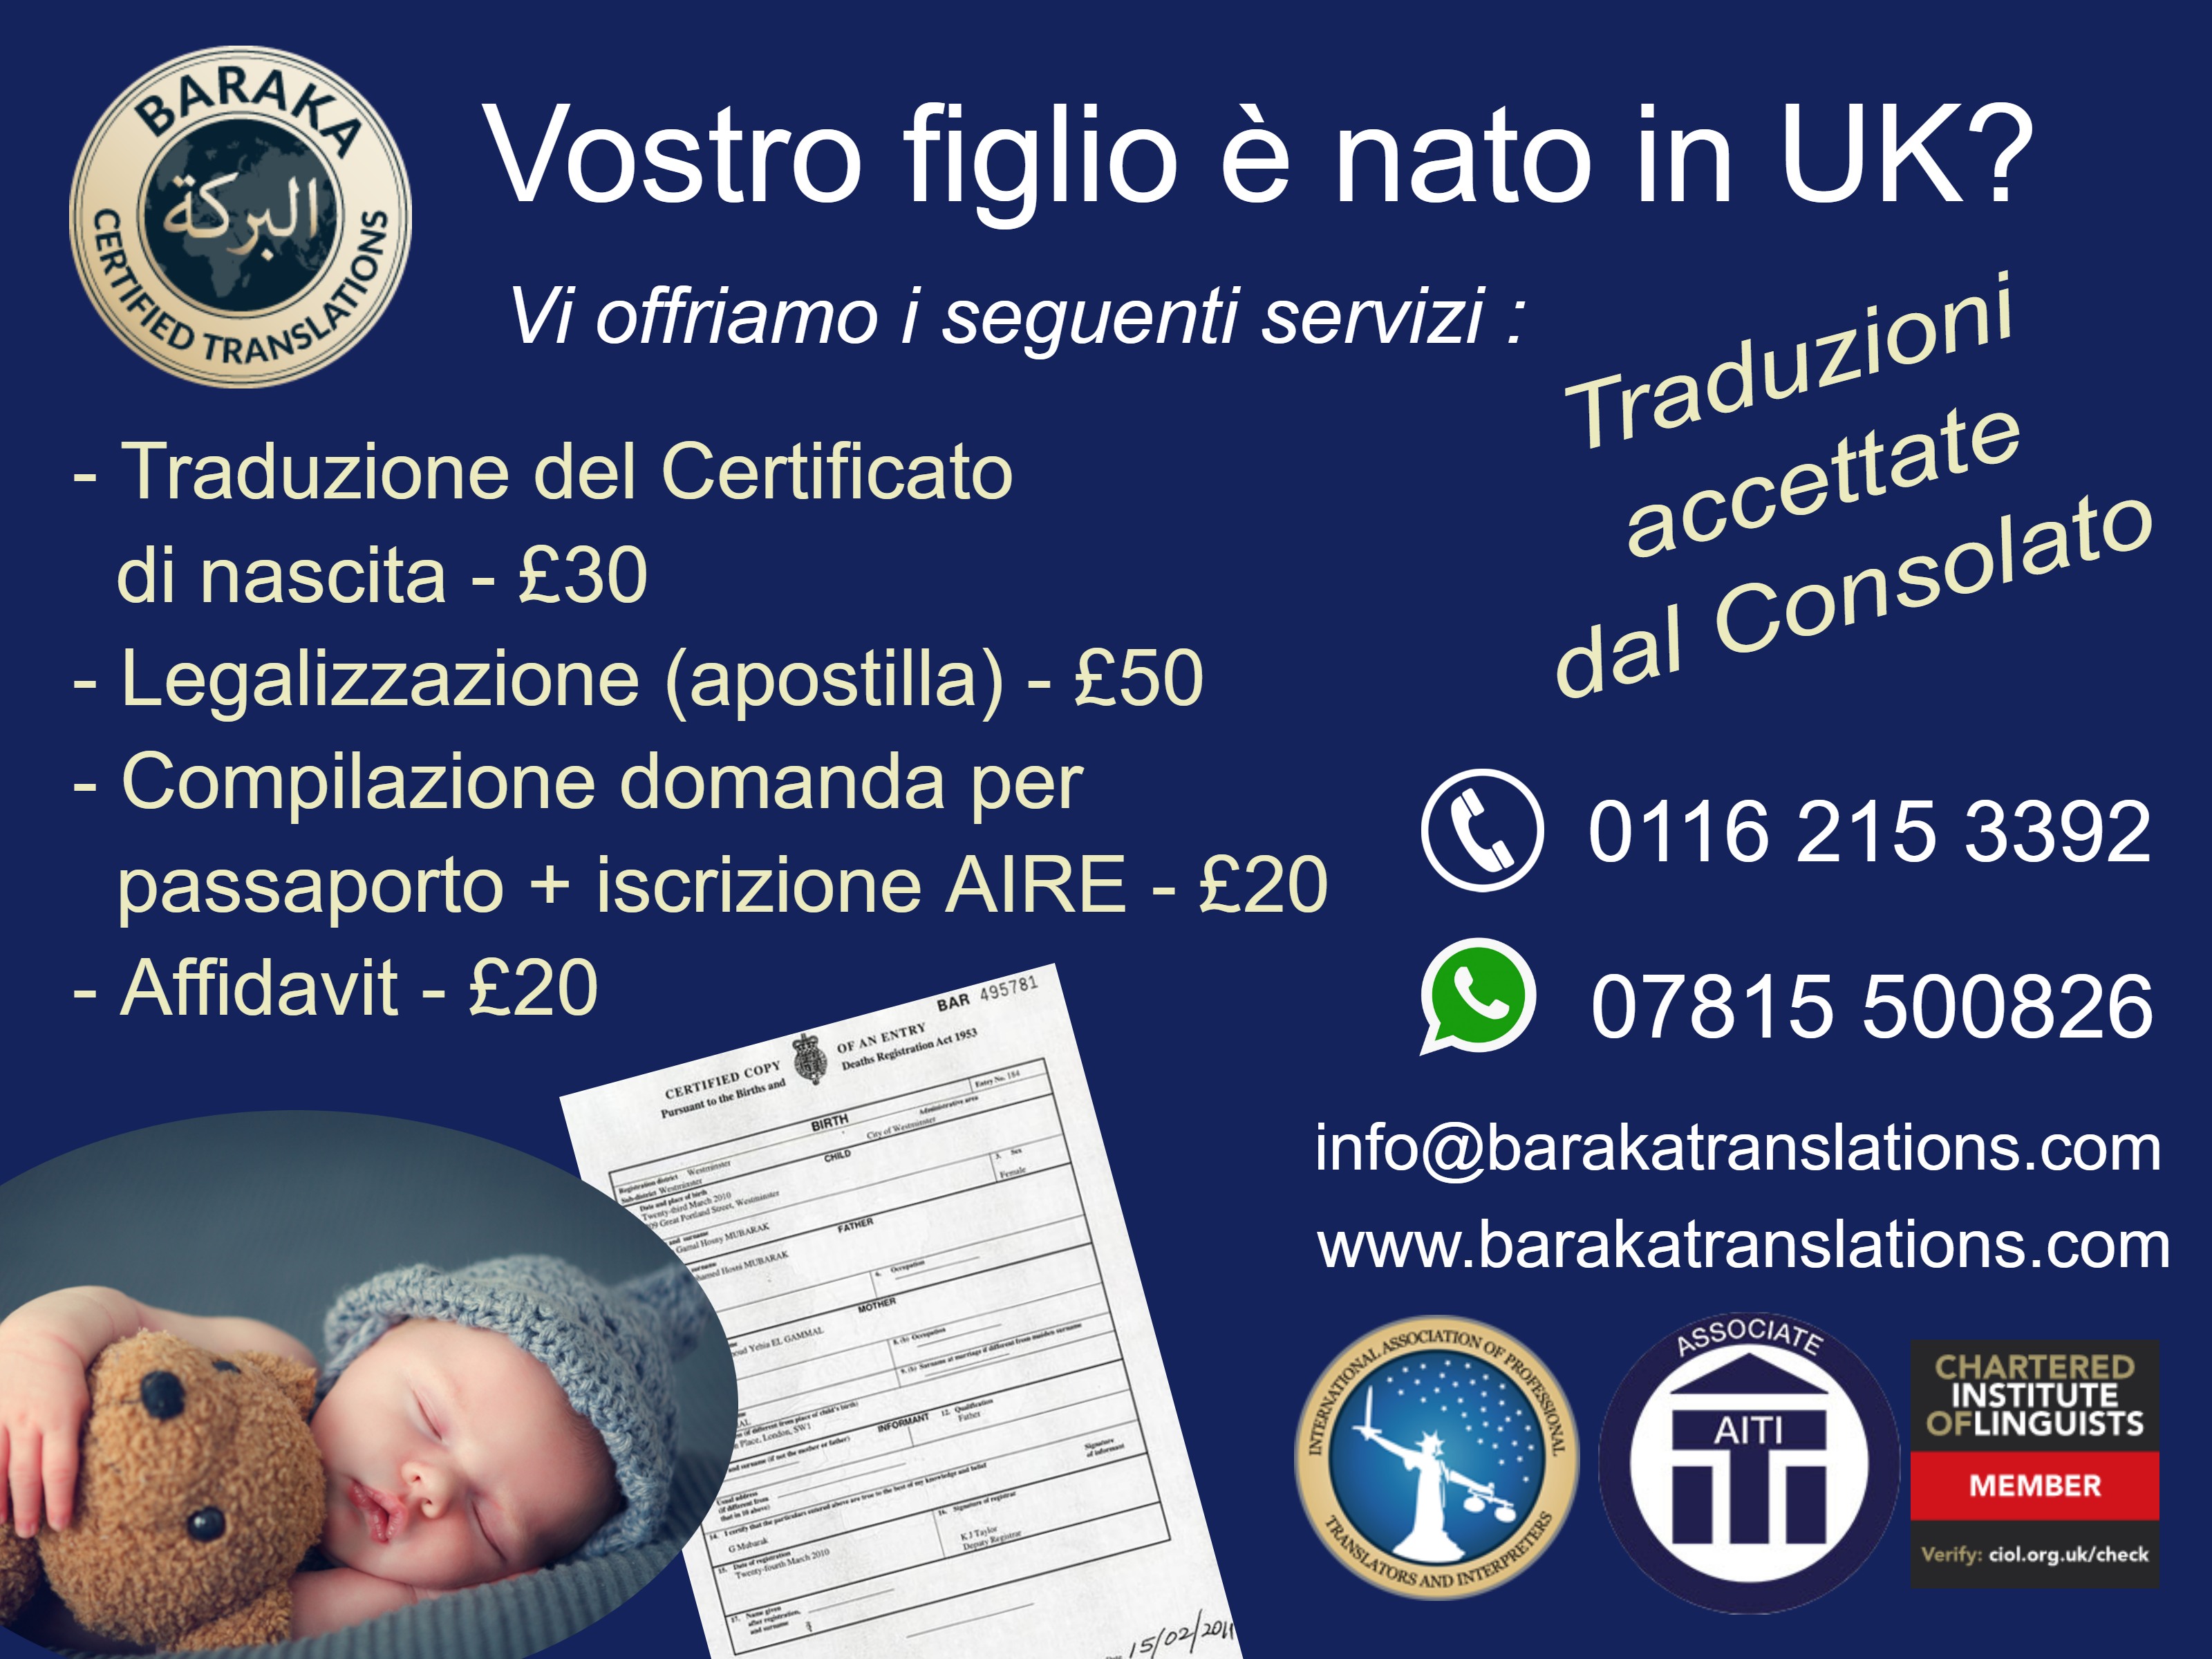 BABY UK consolato poster (1).png